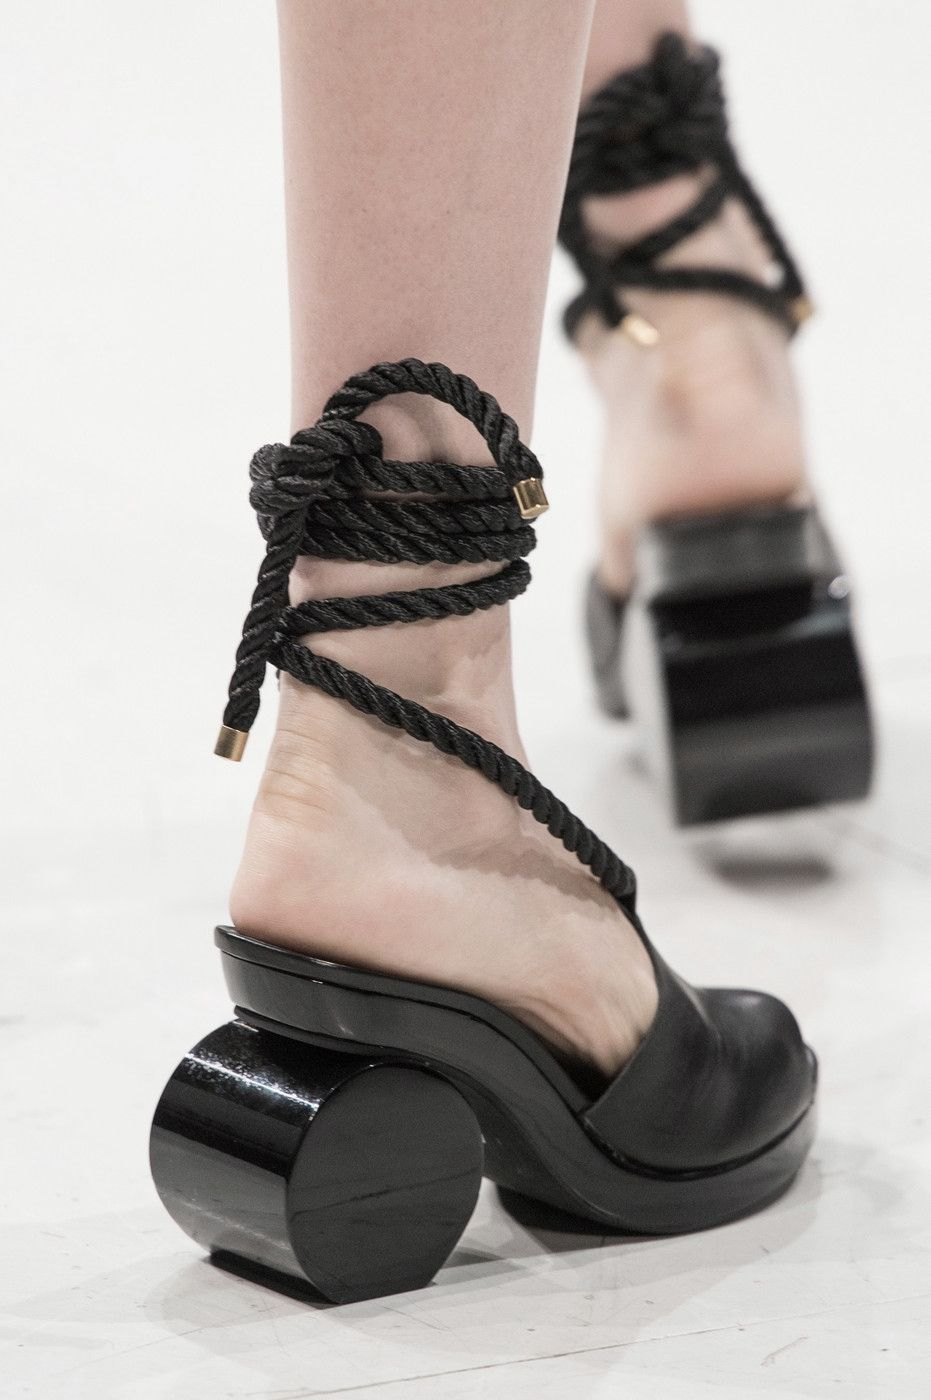 8d3b0b03d314 Hussein Chalayan SS 2016 Creative Shoes